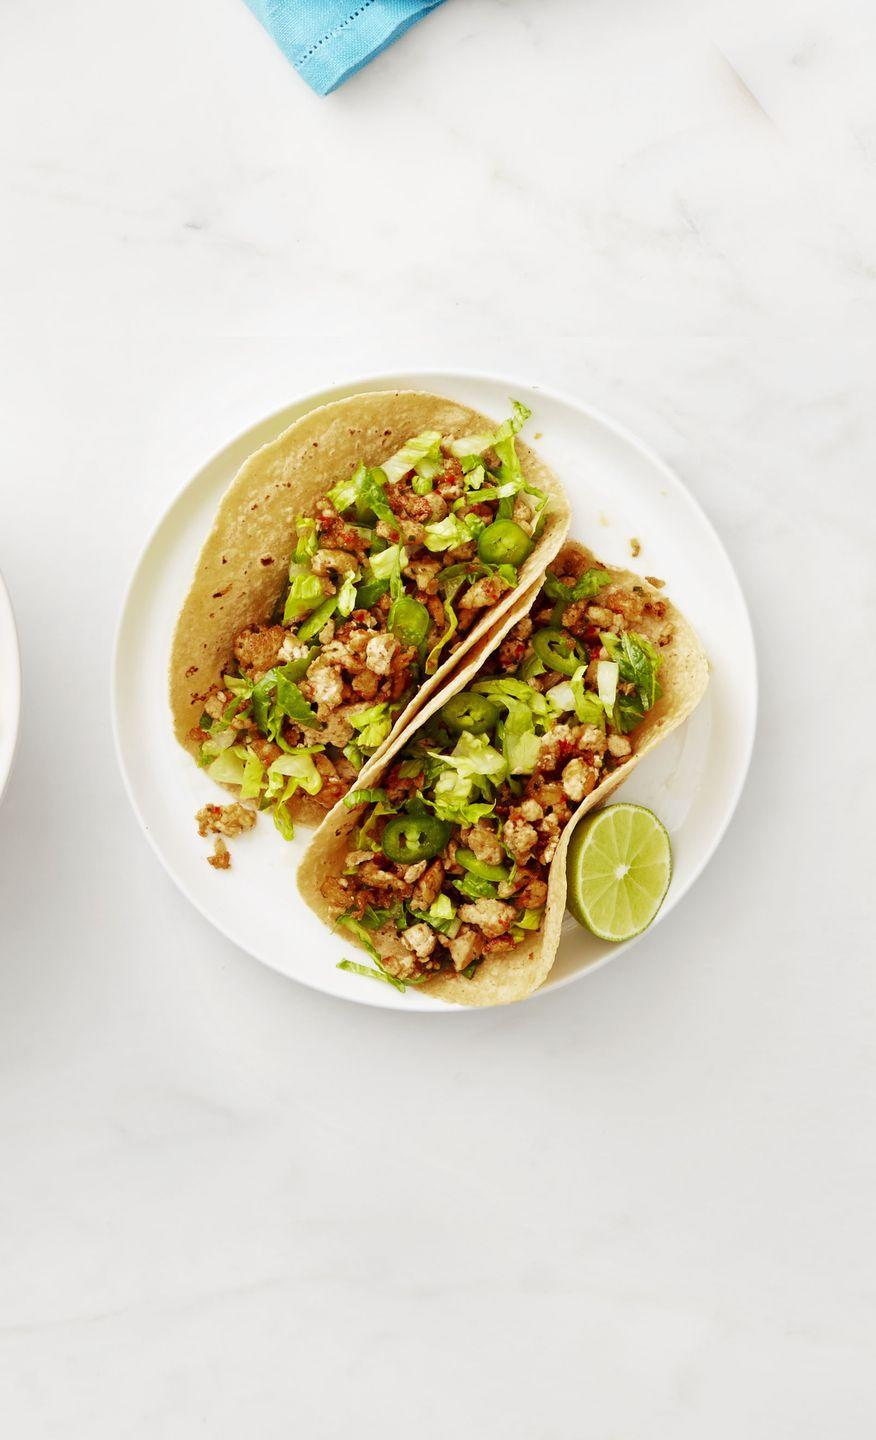 """<p>Tofu will become your new go-to filling after taking a bite of these deliciously crunchy tacos.</p><p><a href=""""https://www.womansday.com/food-recipes/food-drinks/recipes/a53281/tofu-tacos-with-romaine-slaw/"""" rel=""""nofollow noopener"""" target=""""_blank"""" data-ylk=""""slk:Get the Tofu Tacos with Romaine Slaw recipe."""" class=""""link rapid-noclick-resp""""><em>Get the Tofu Tacos with Romaine Slaw recipe.</em></a></p>"""